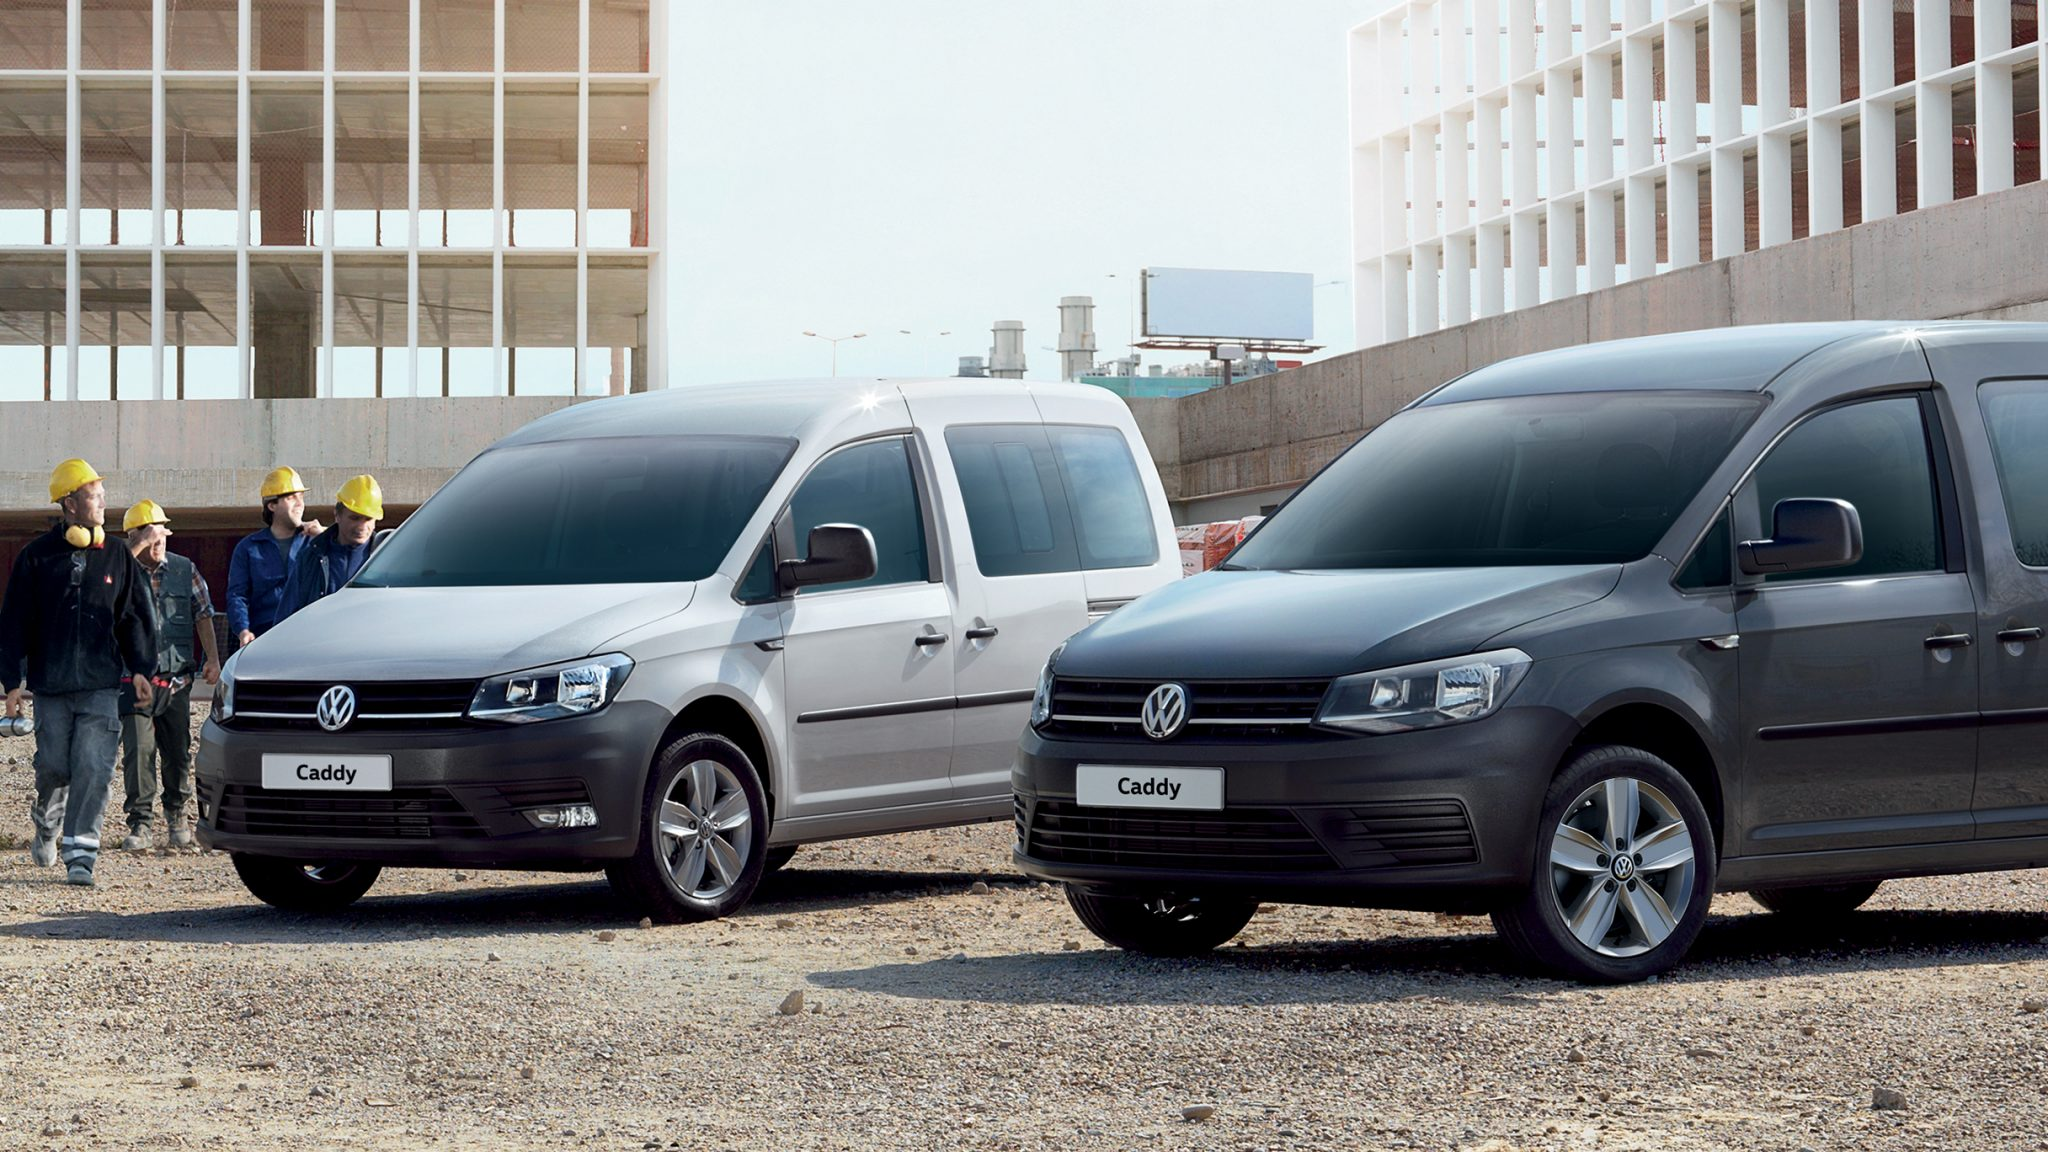 Volkswagen Caddy Crew Bus specs and prices